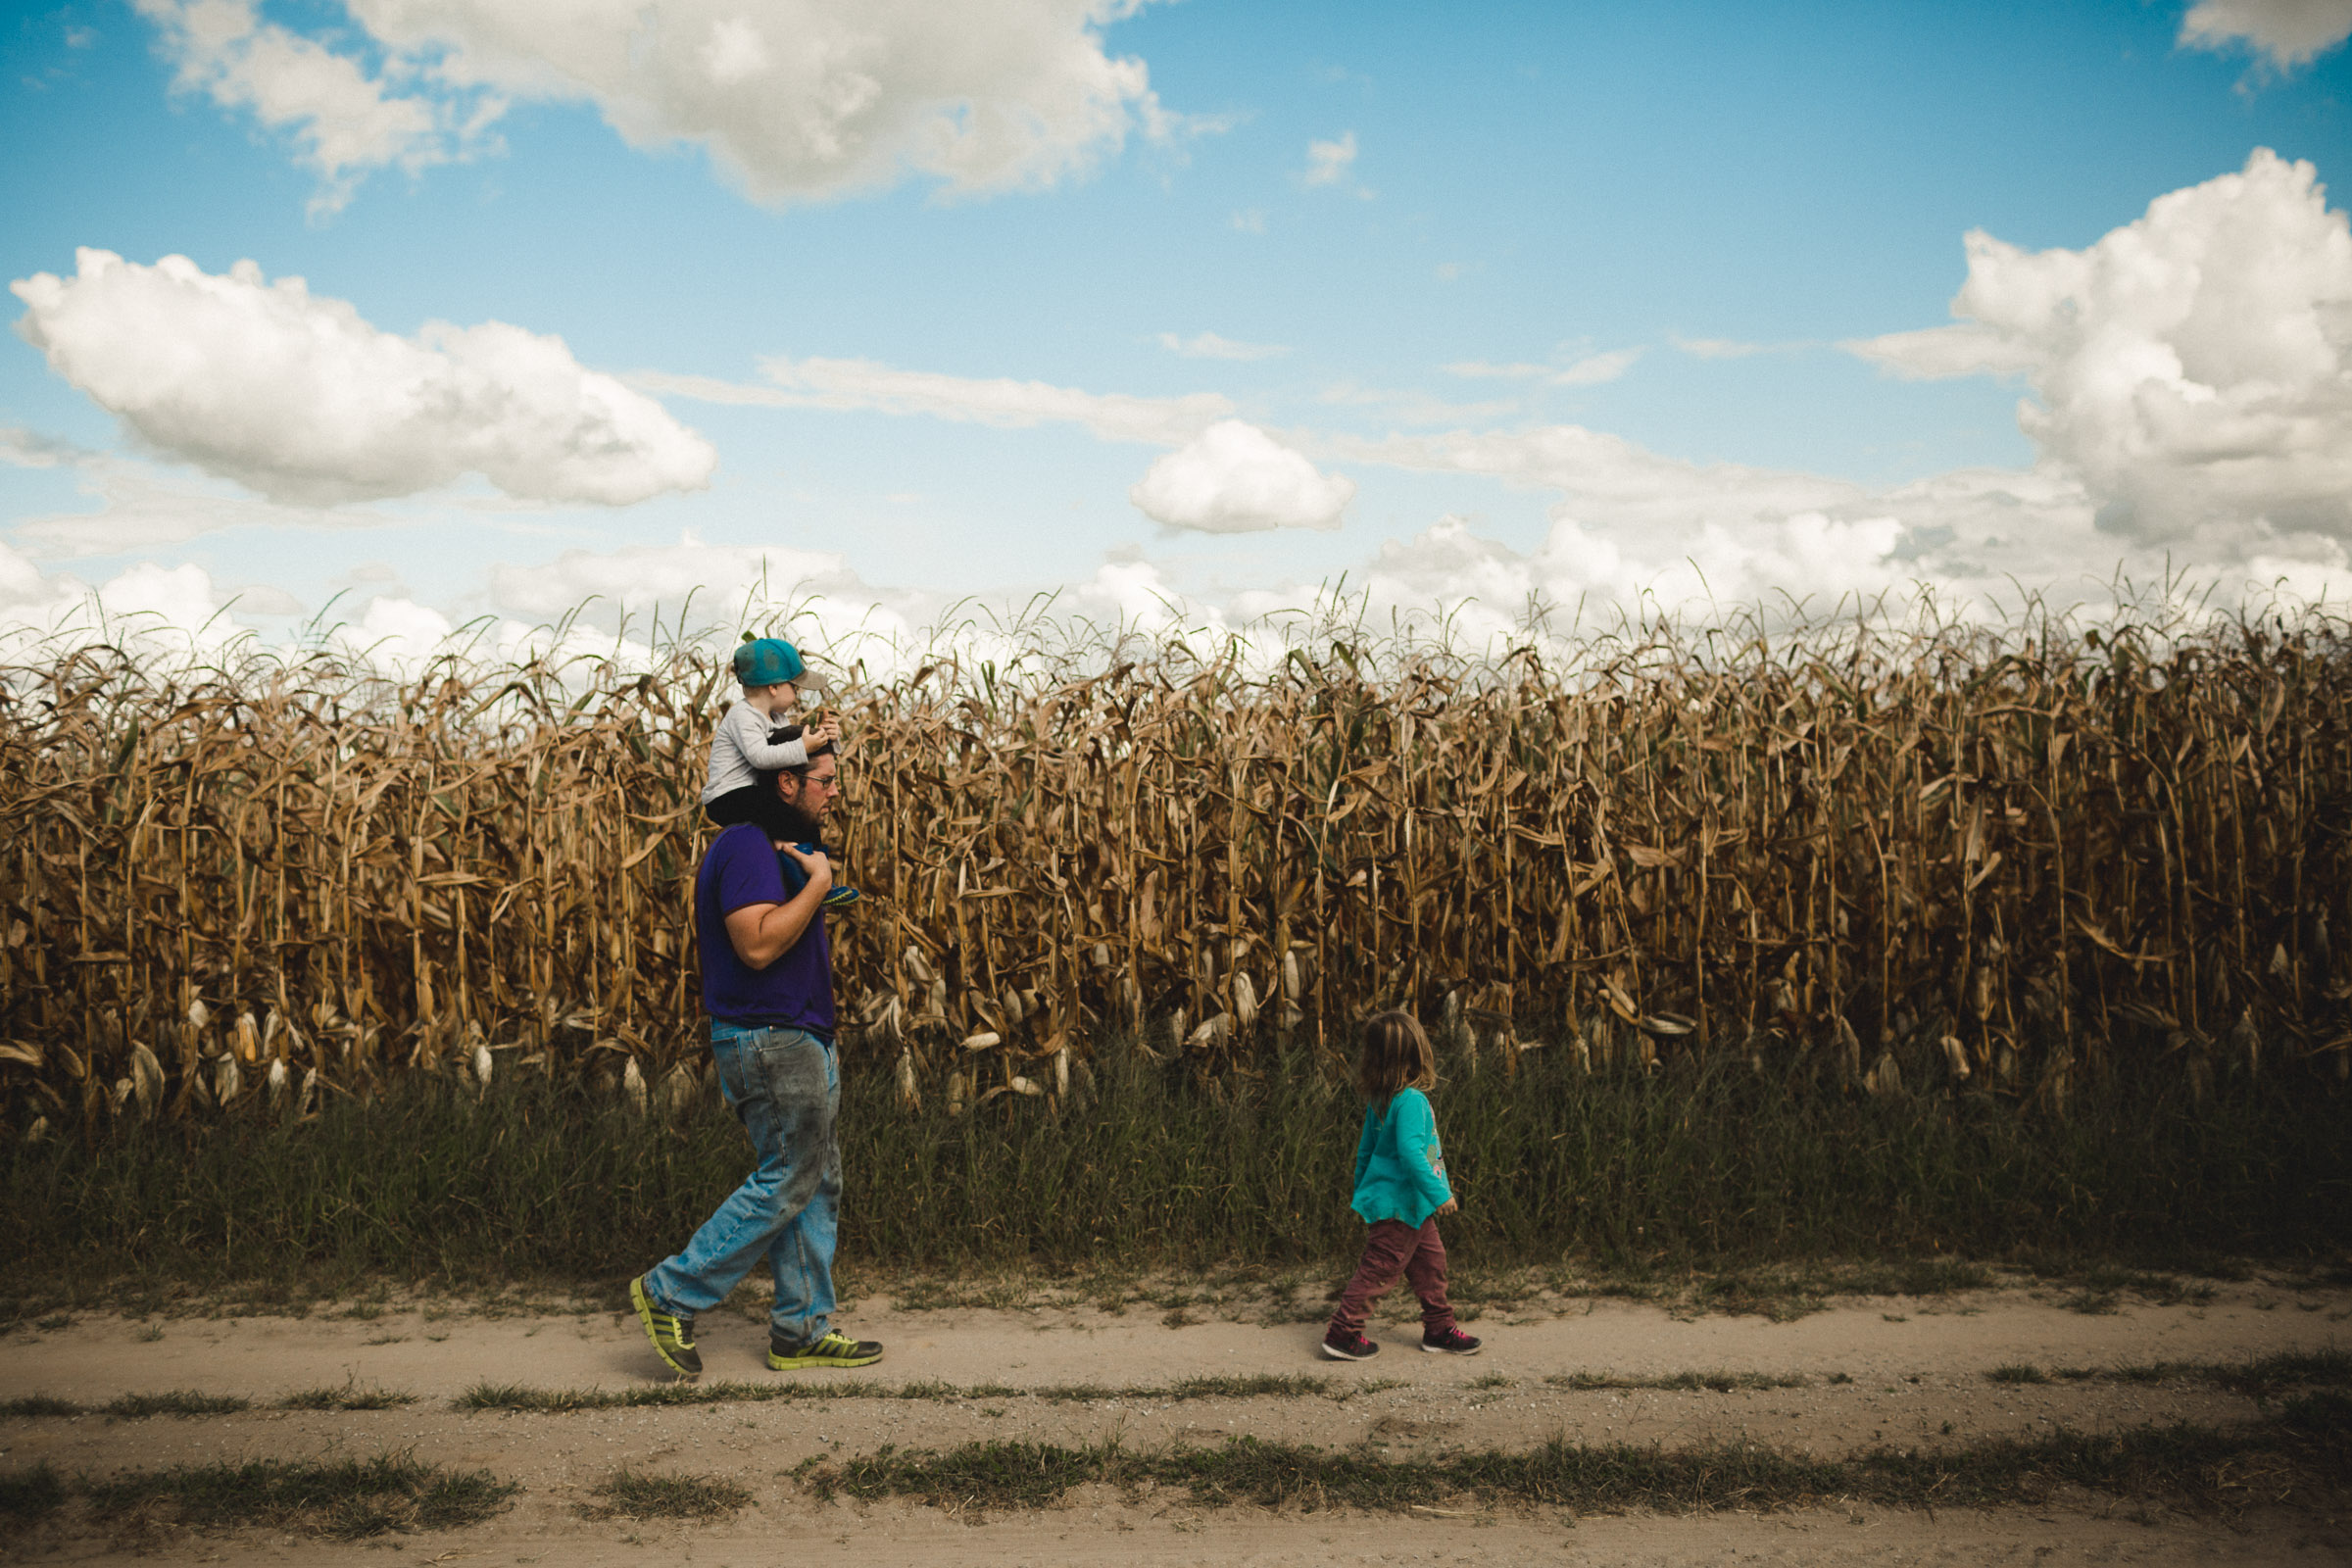 Family walking together along corn rows, with boy on dad's shoulders